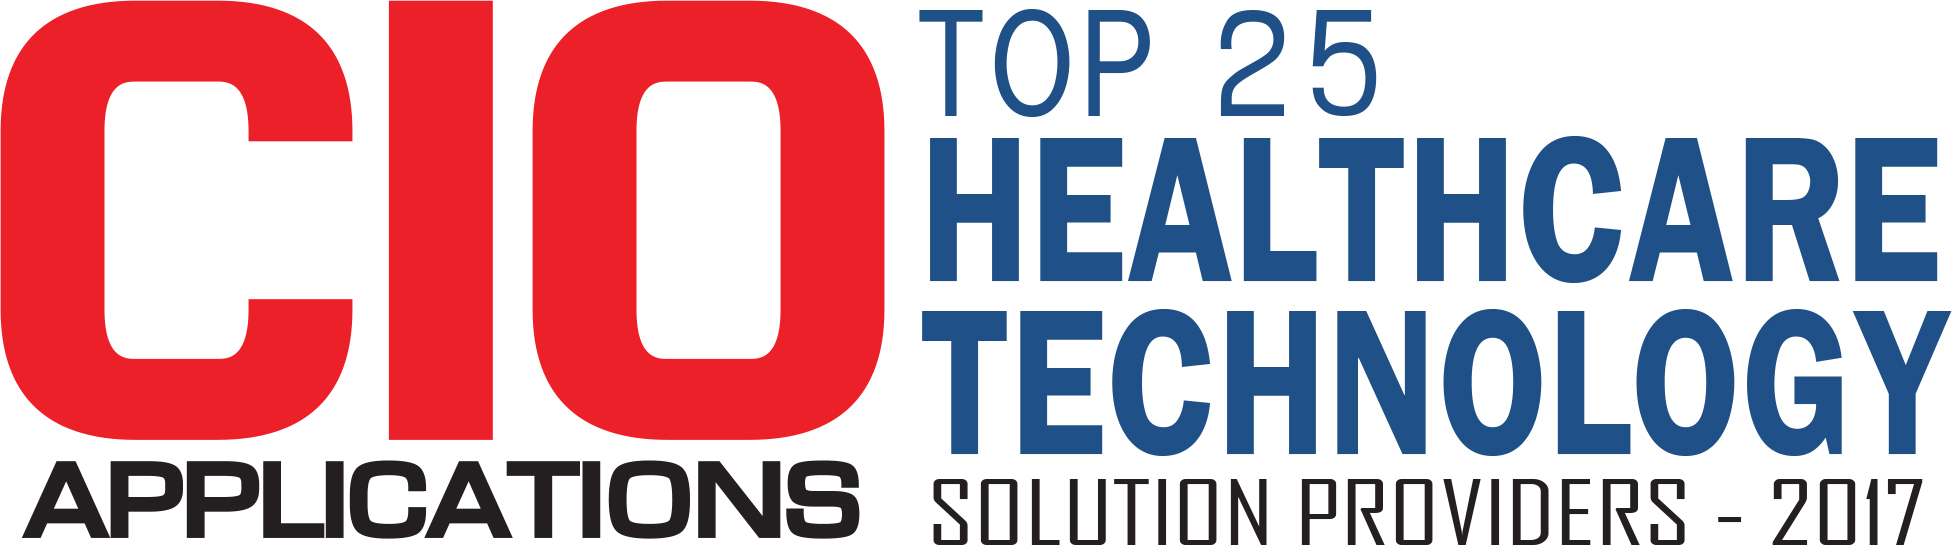 Top 25 Healthcare Technology Solution Companies - 2017